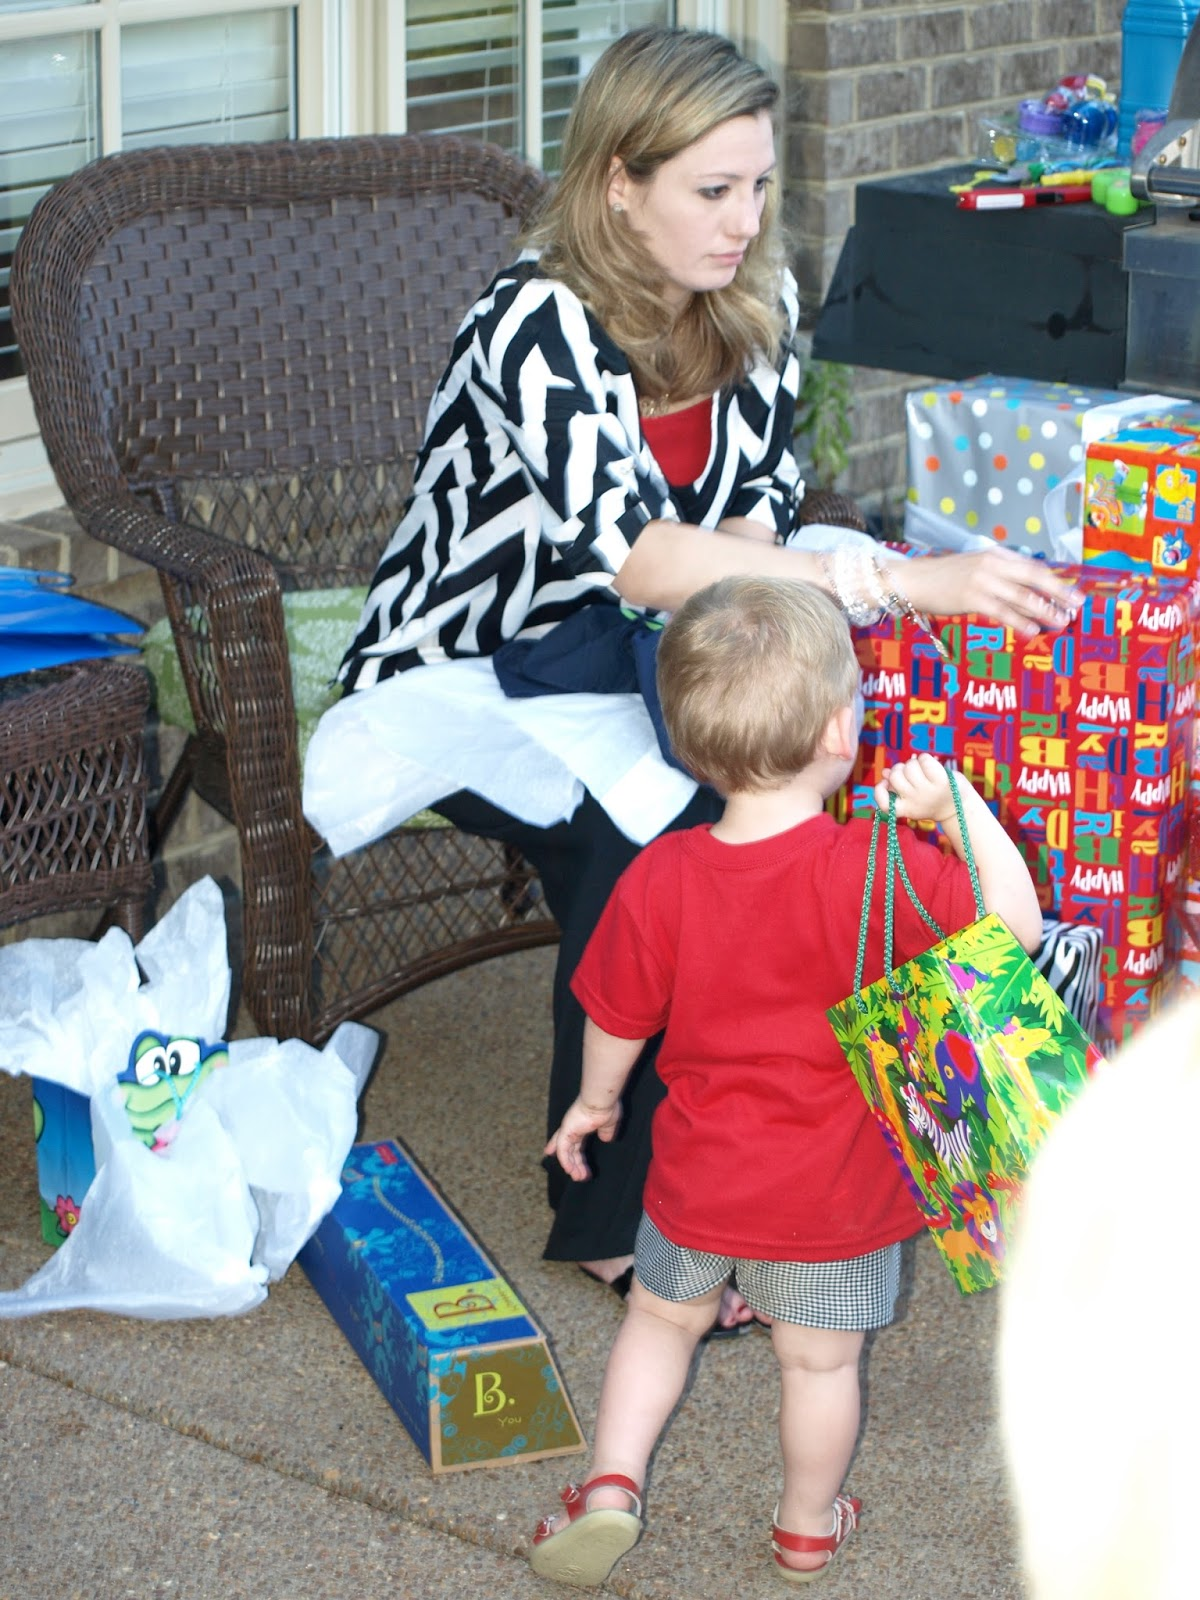 Beloved Baby Names 2015 Top Ten Baby Names: The Craig Family Logbook: Jacob's 2nd Birthday Party